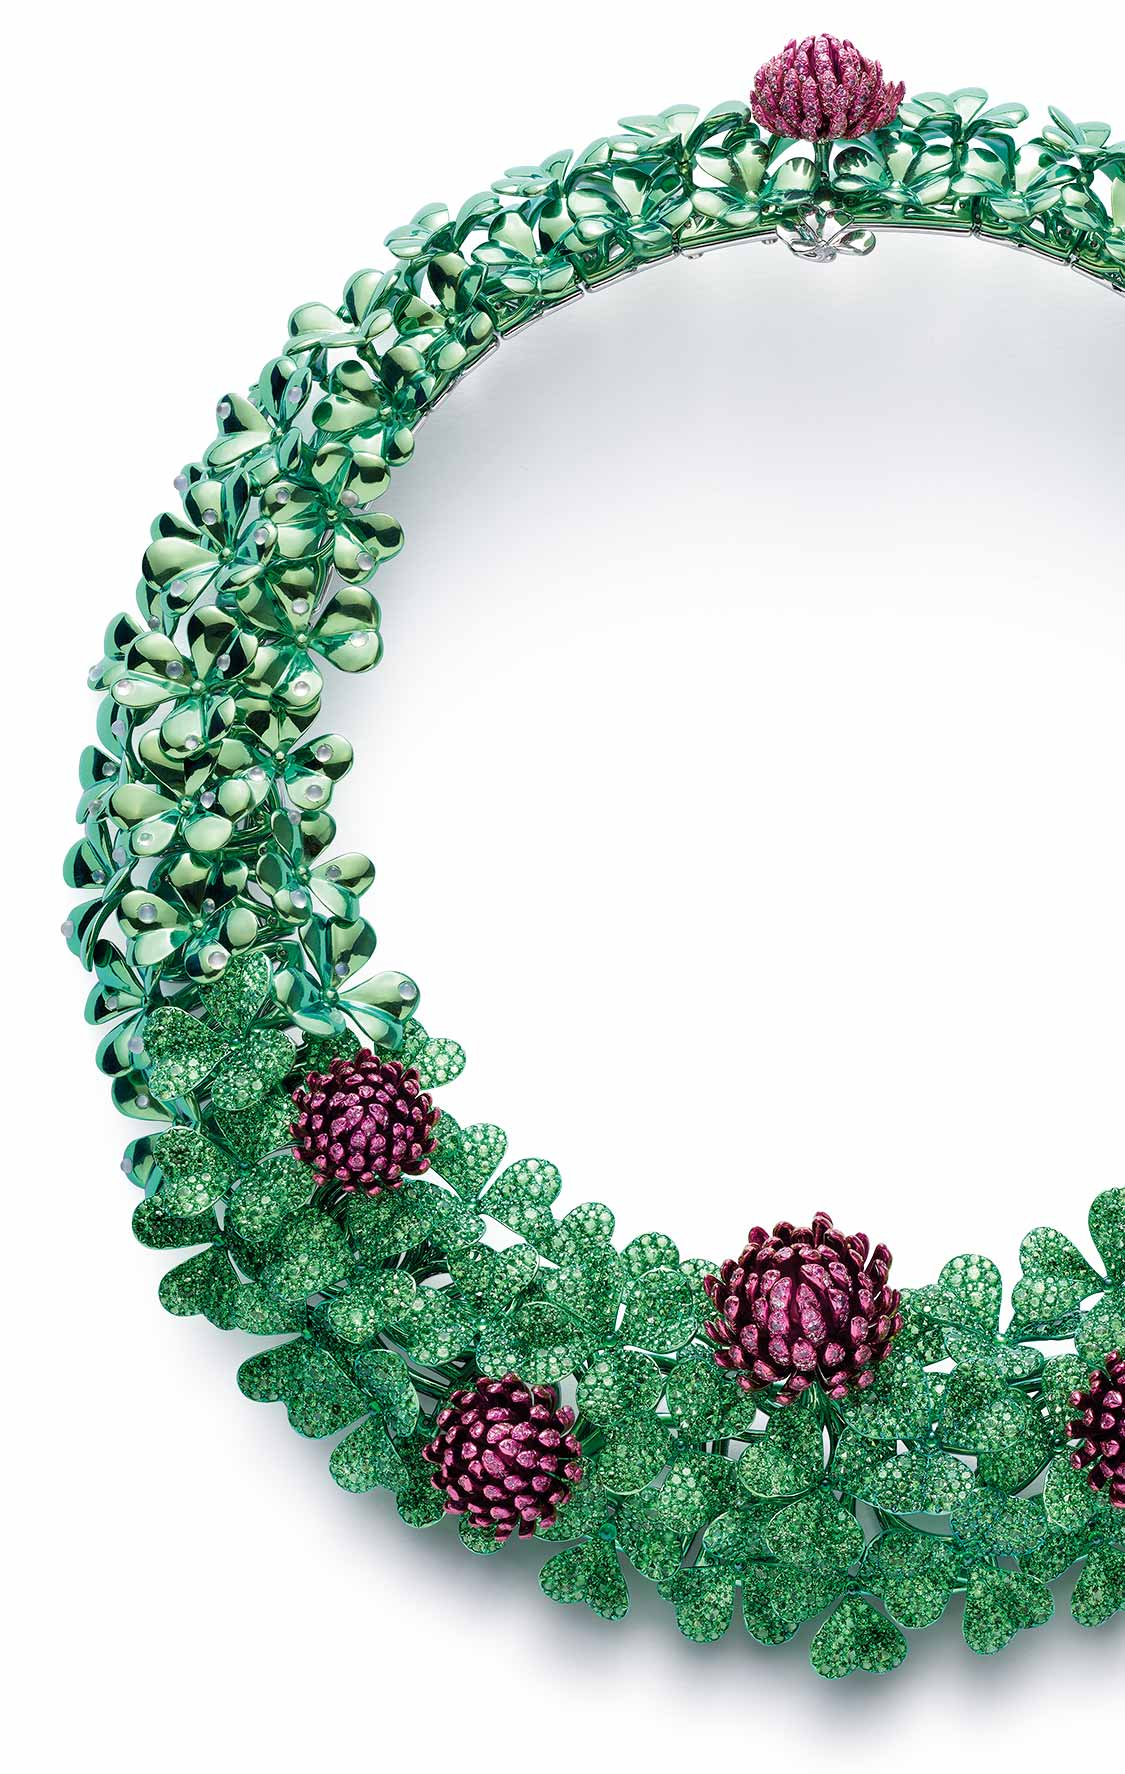 A beautiful clover-shaped necklace, designed as a meadow of jewelled flowers in tsavorites, green tourmalines, pink sapphires and moonstones.